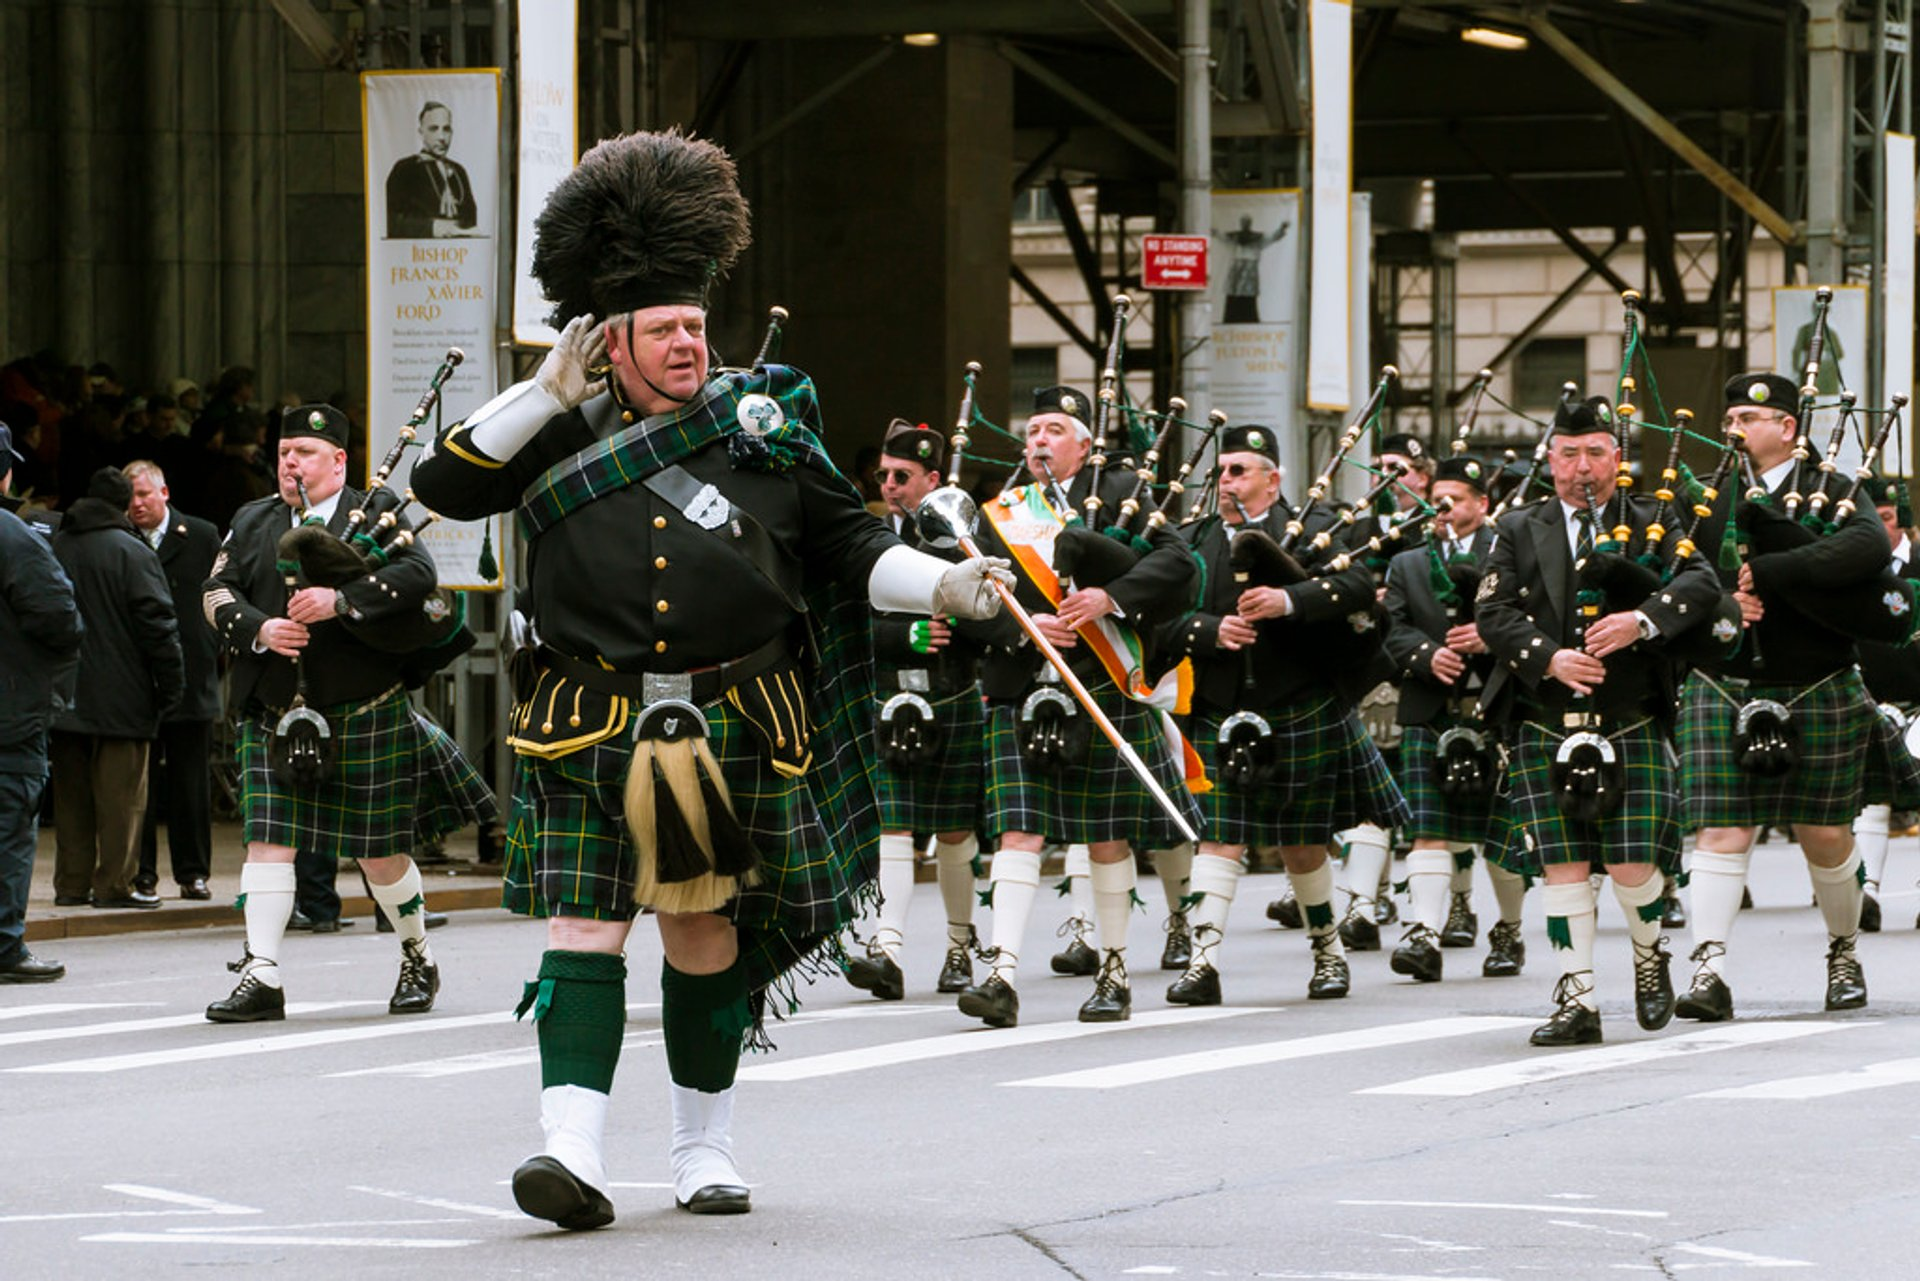 St. Patrick's Day Parade in New York 2020 - Best Time